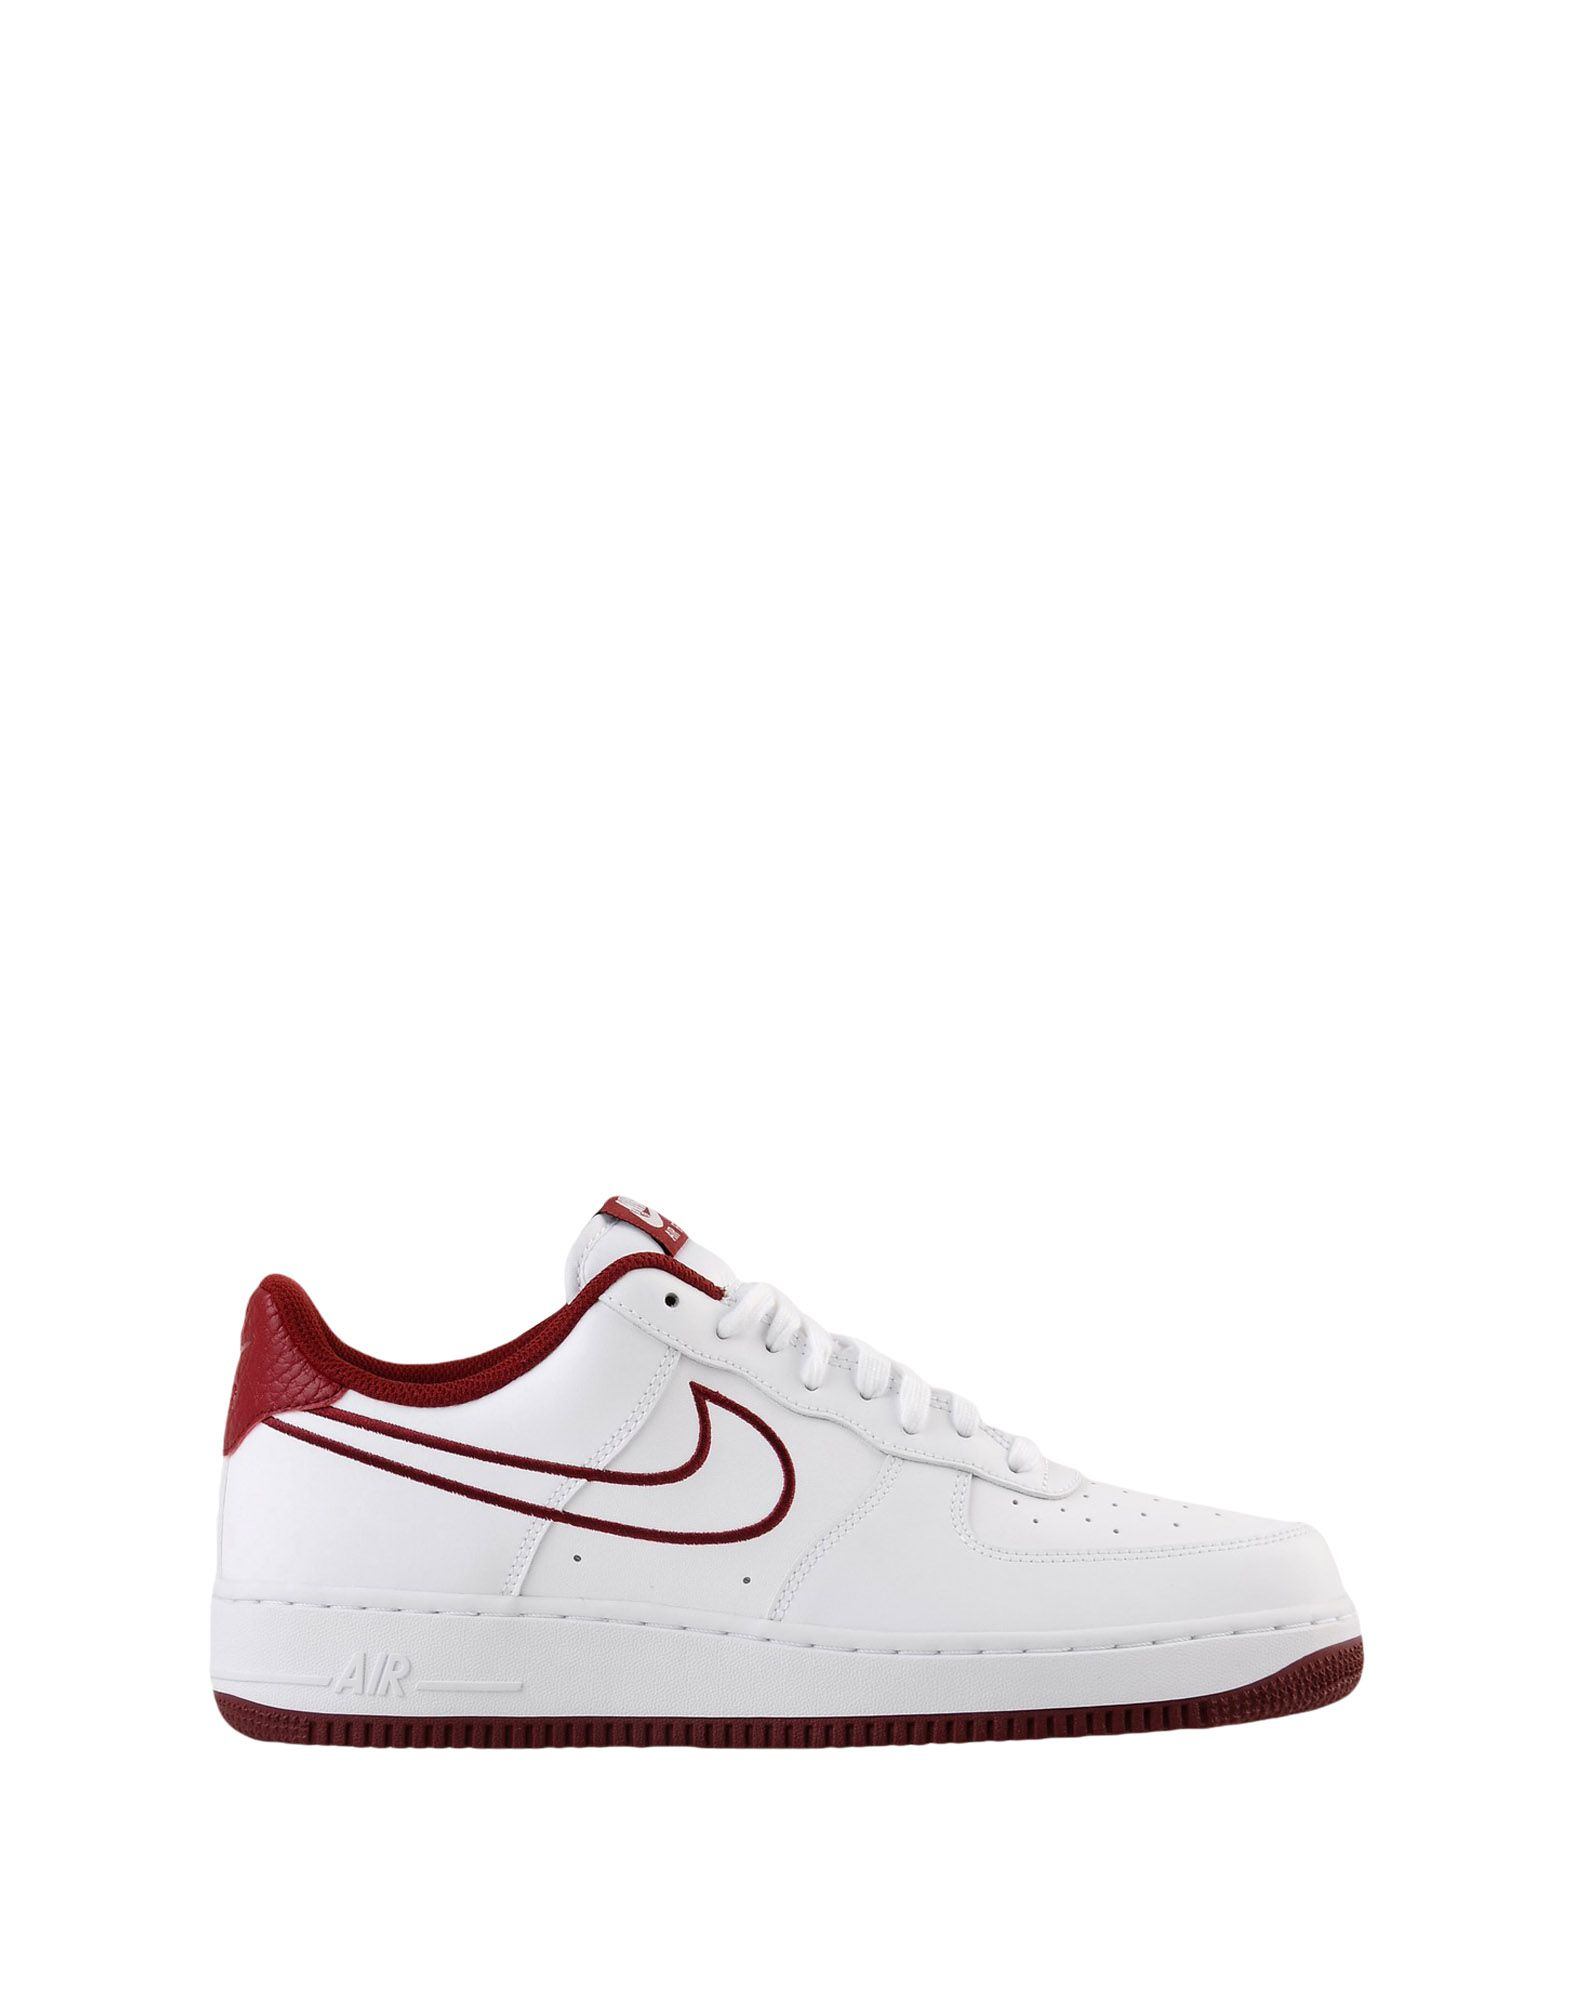 Sneakers Nike Air Force 1 '07 Leather - Homme - Chaussures Sneakers Nike  Blanc Chaussures - femme pas cher homme et femme 7ee013